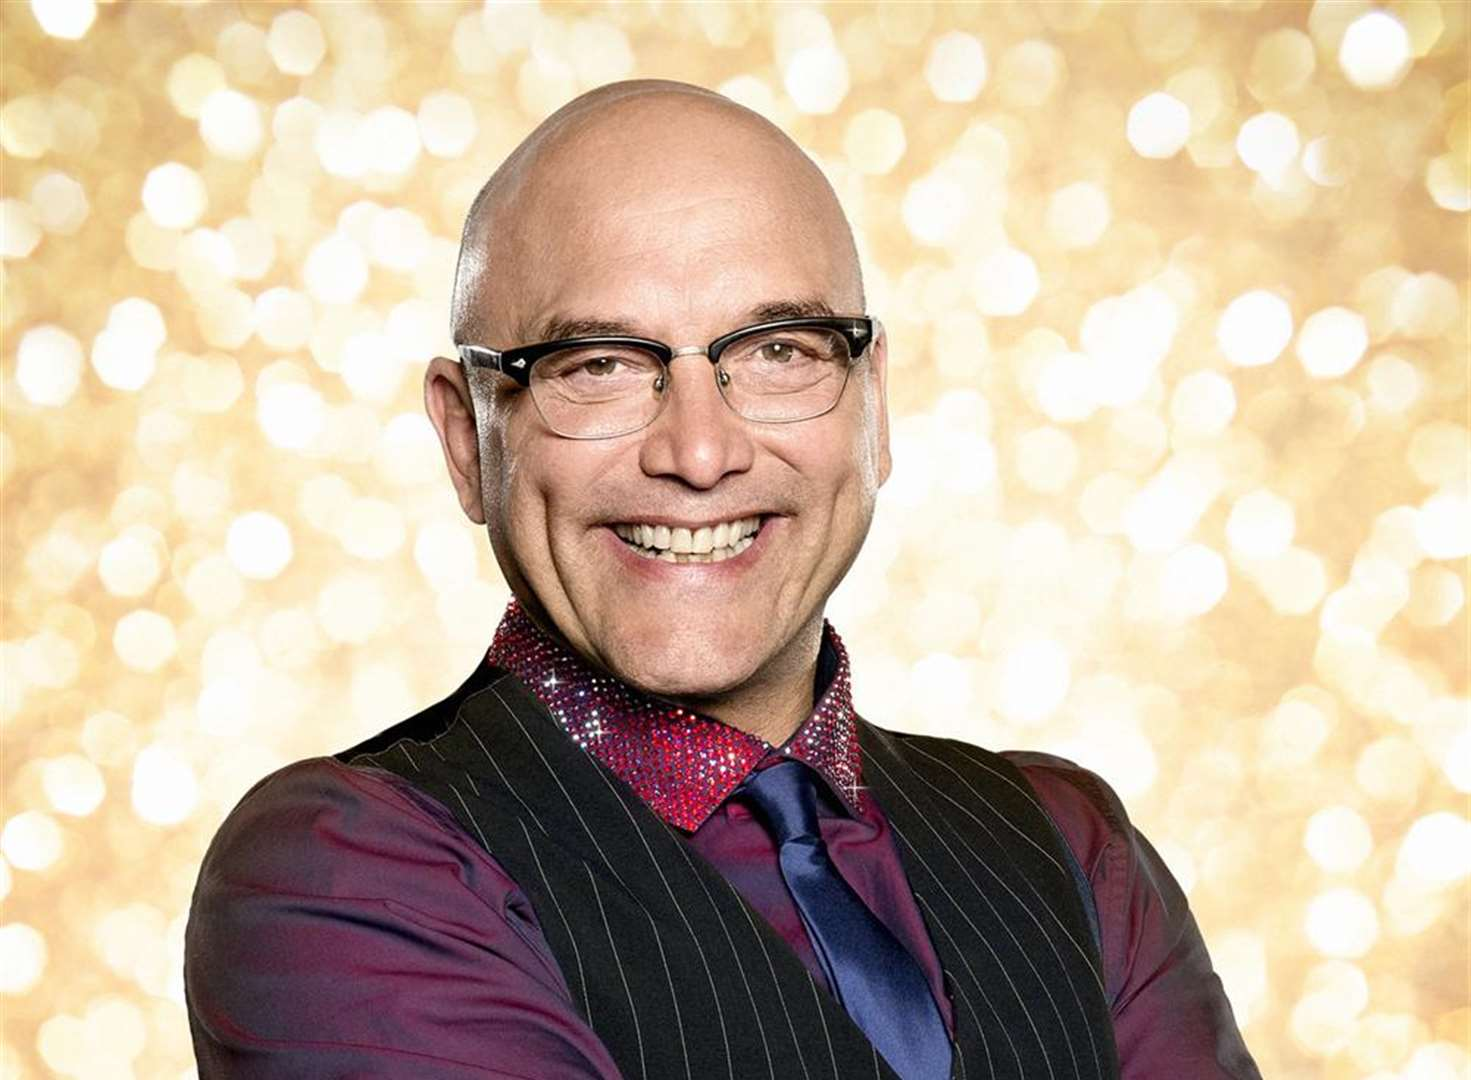 MasterChef Gregg reveals Strictly woes